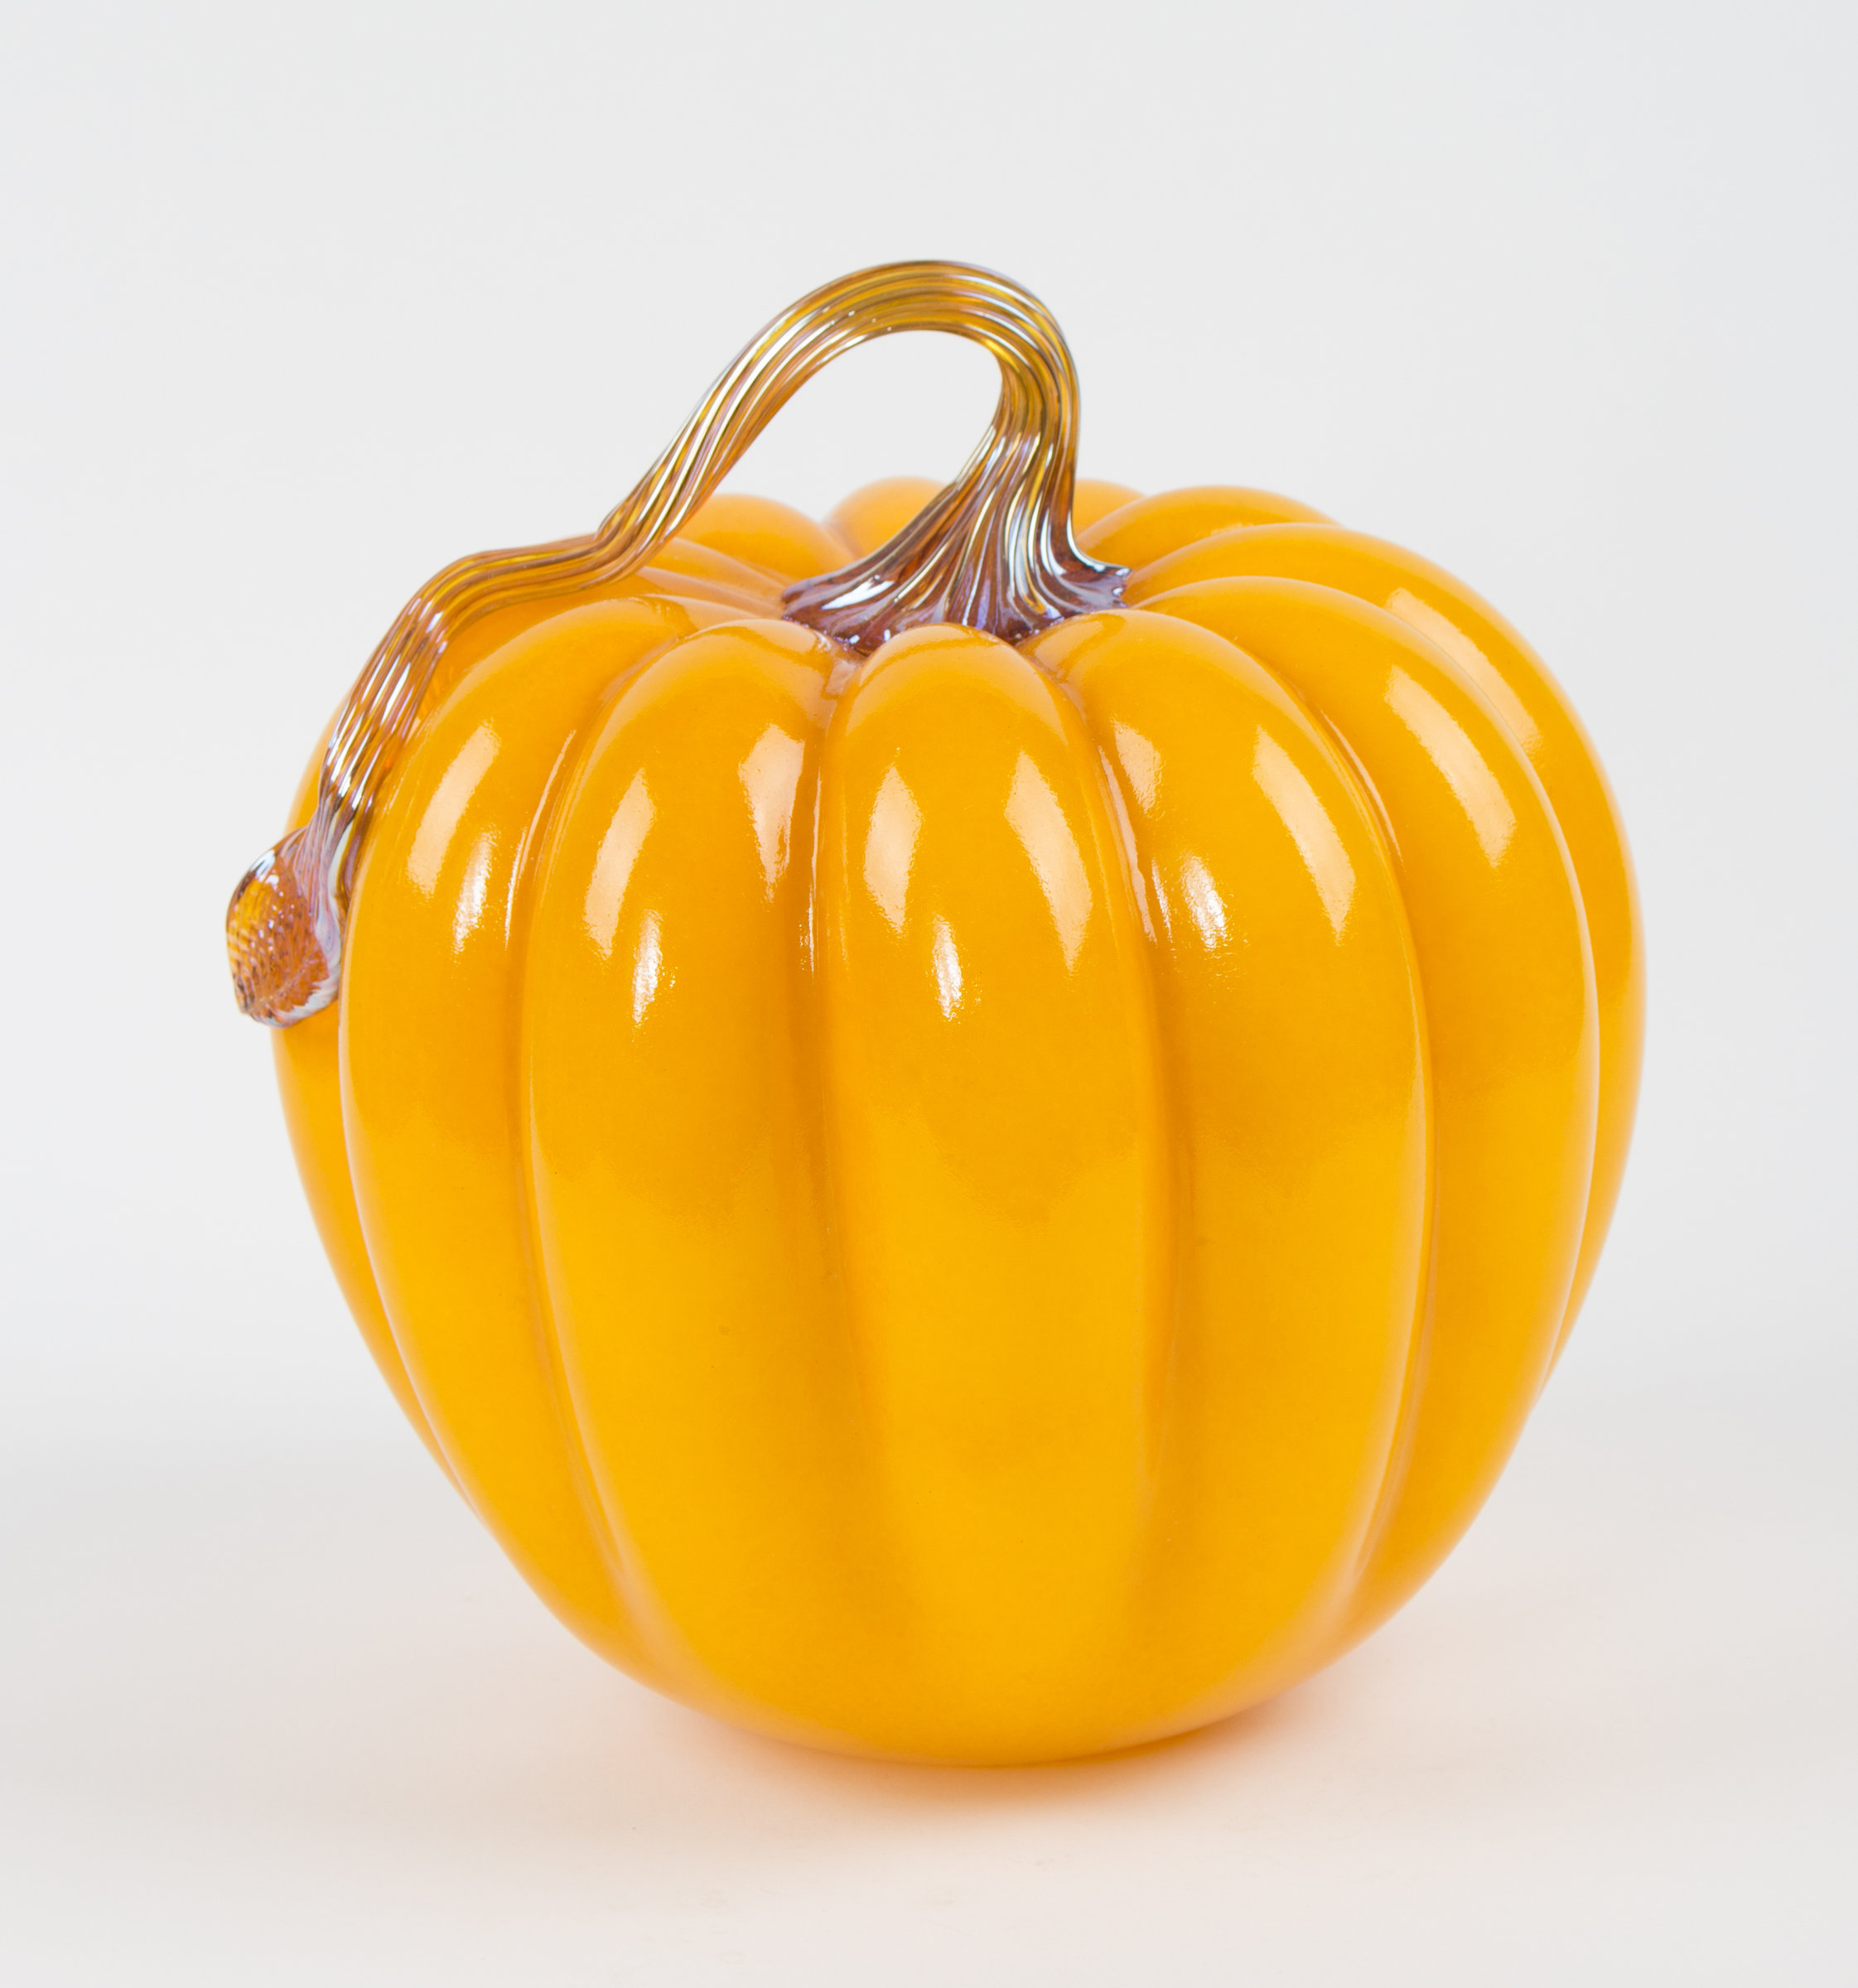 Large gold pumpkin by treg silkwood art glass sculpture Silkwood glass